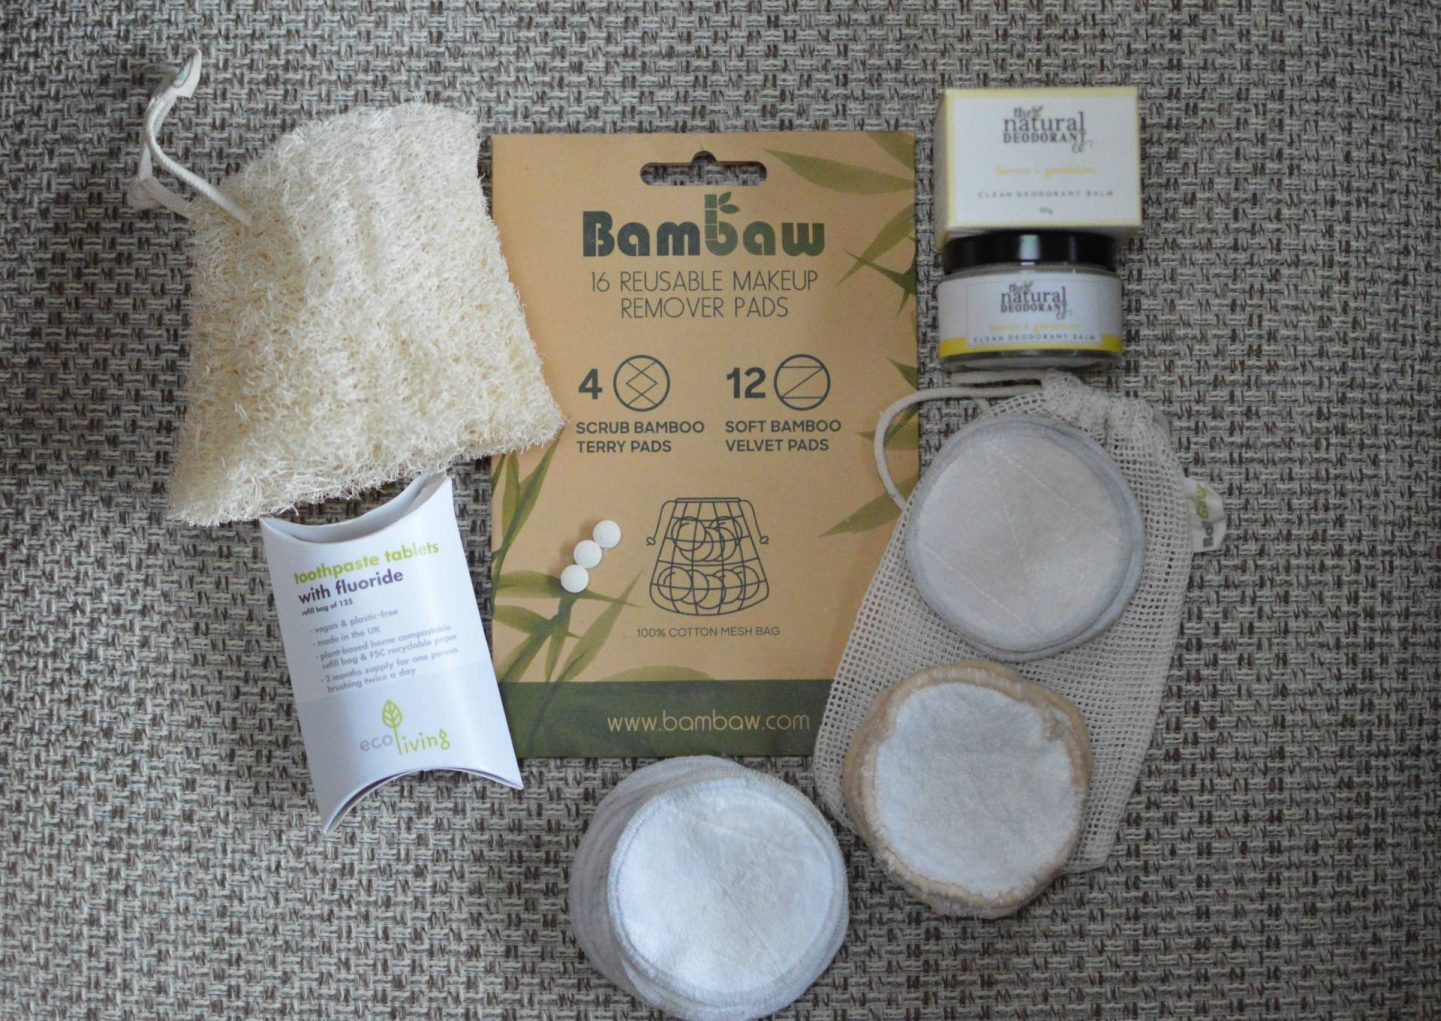 Easy Eco-Friendly Beauty Swaps, Bambaw reusable makeup pads, ecoLiving toothpaste tablets, The Natural Deodorant Co balm